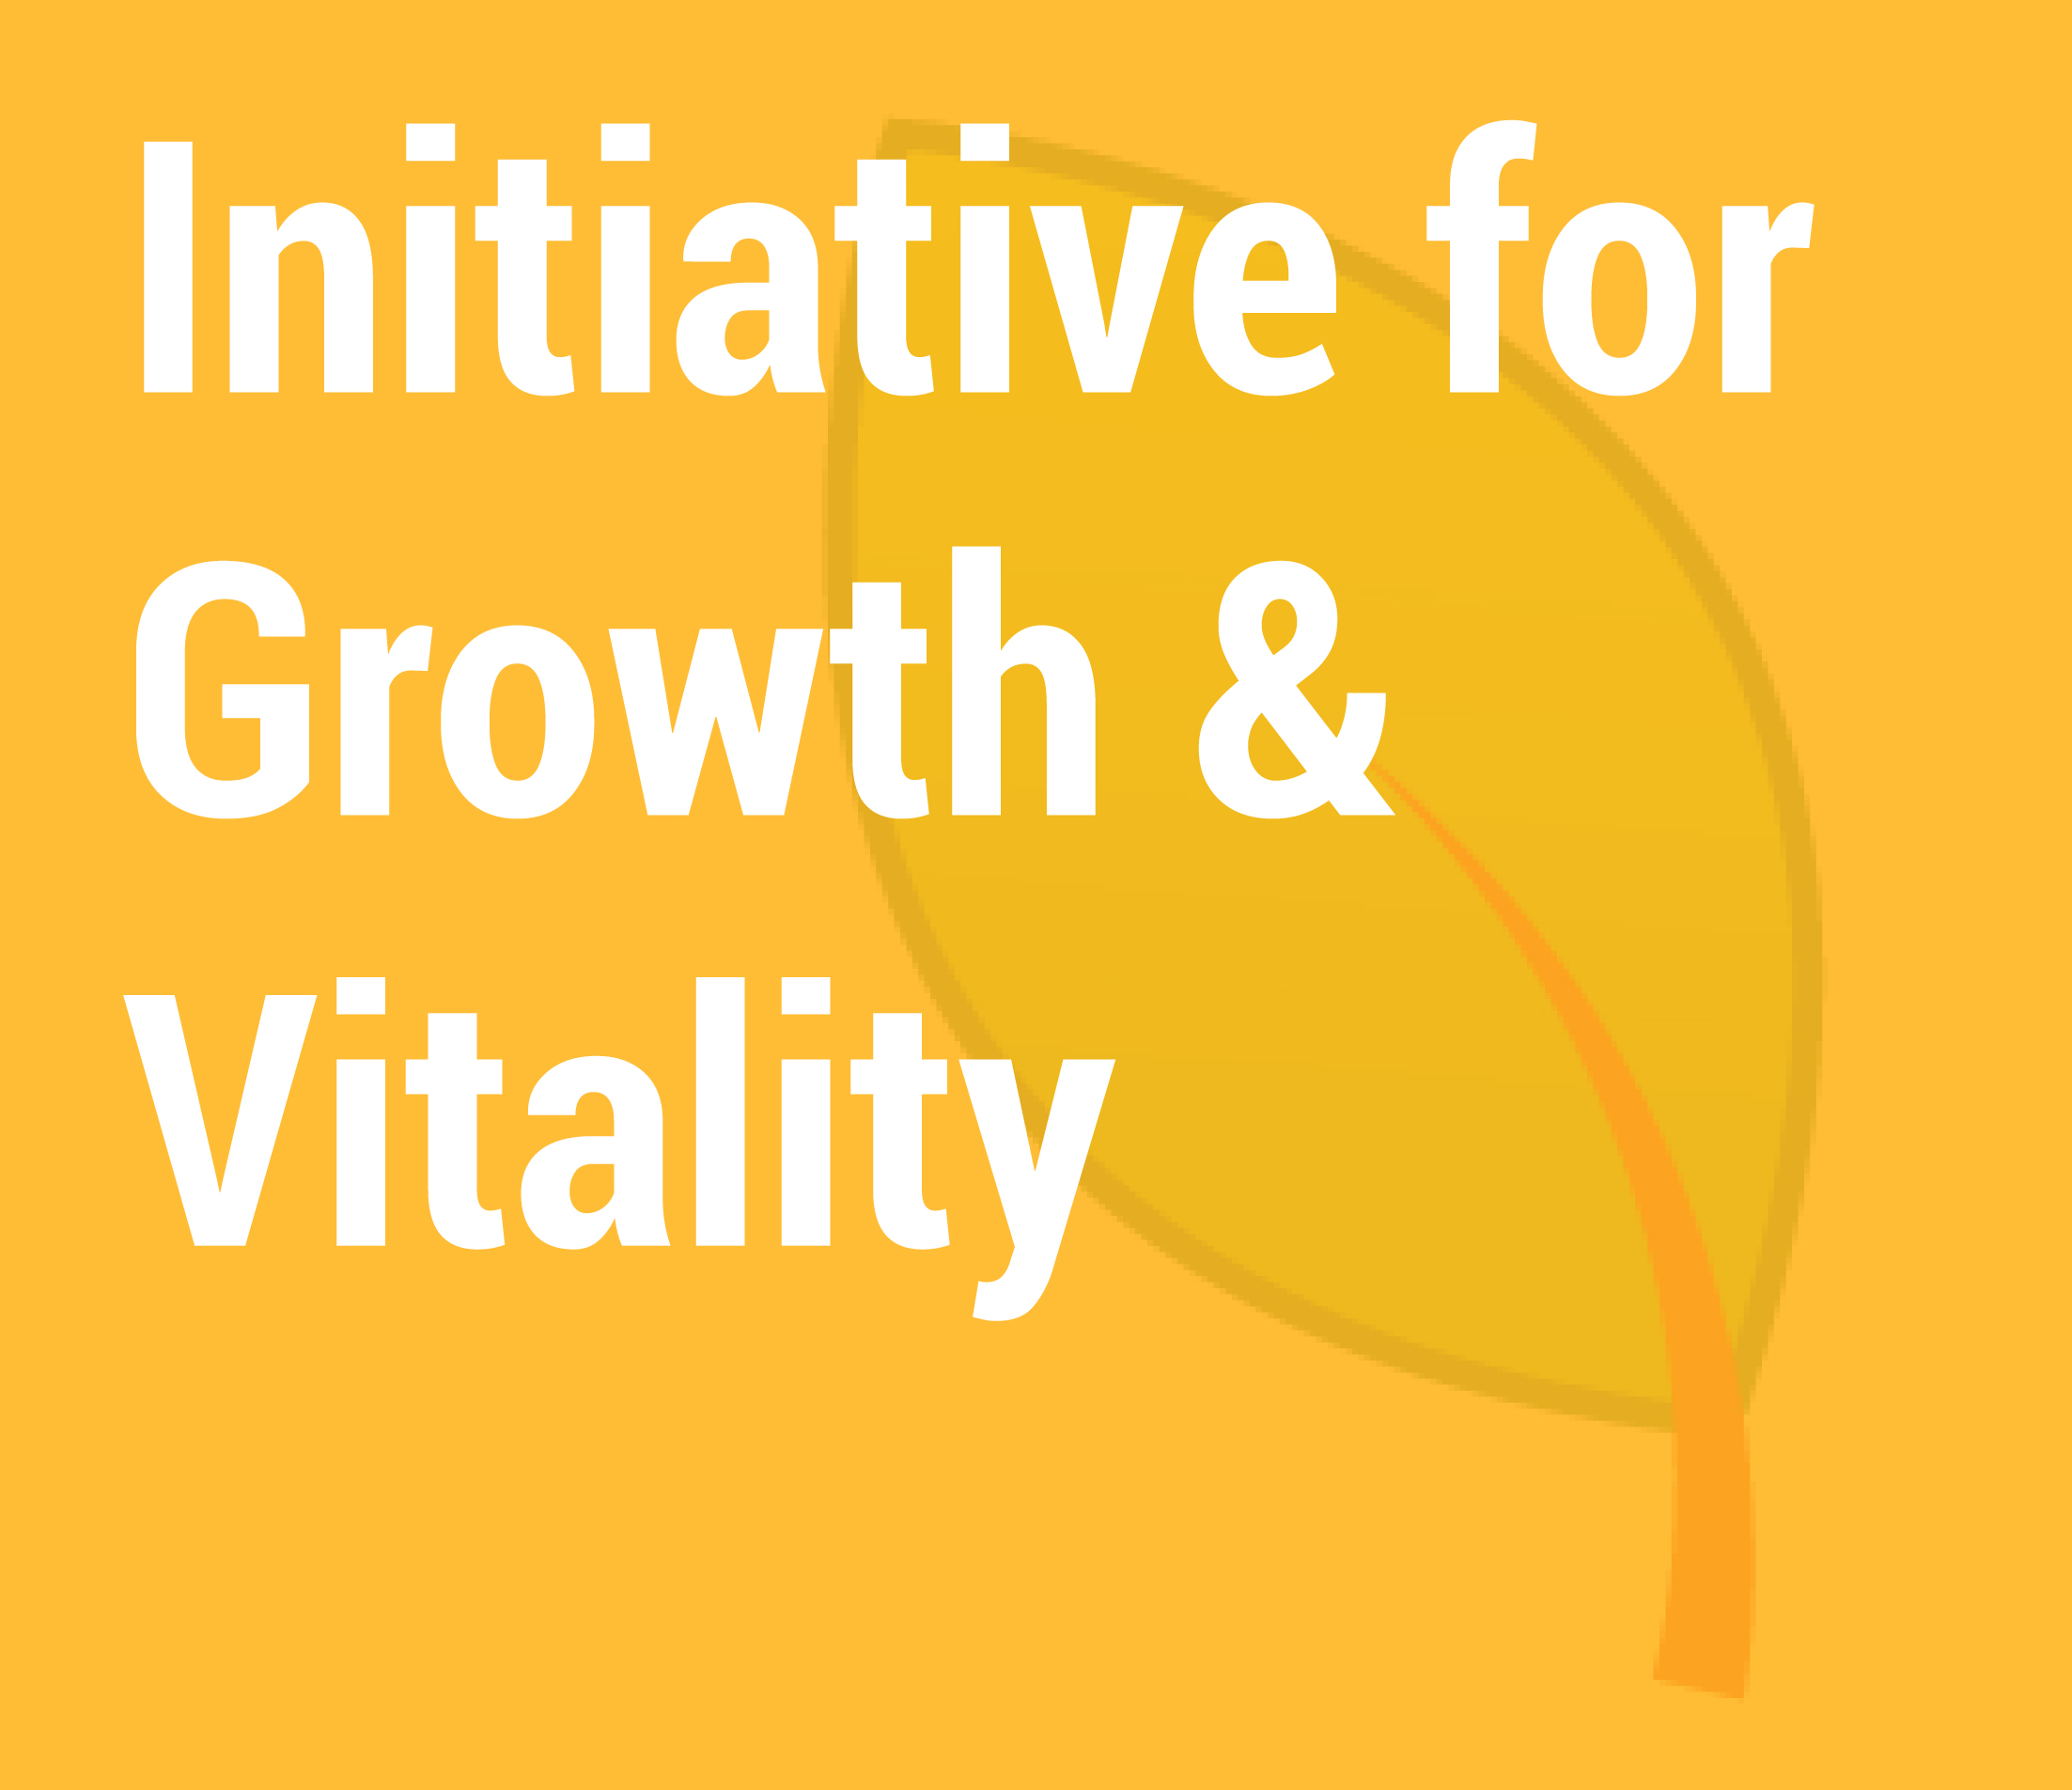 Initiative for Growth & Vitality